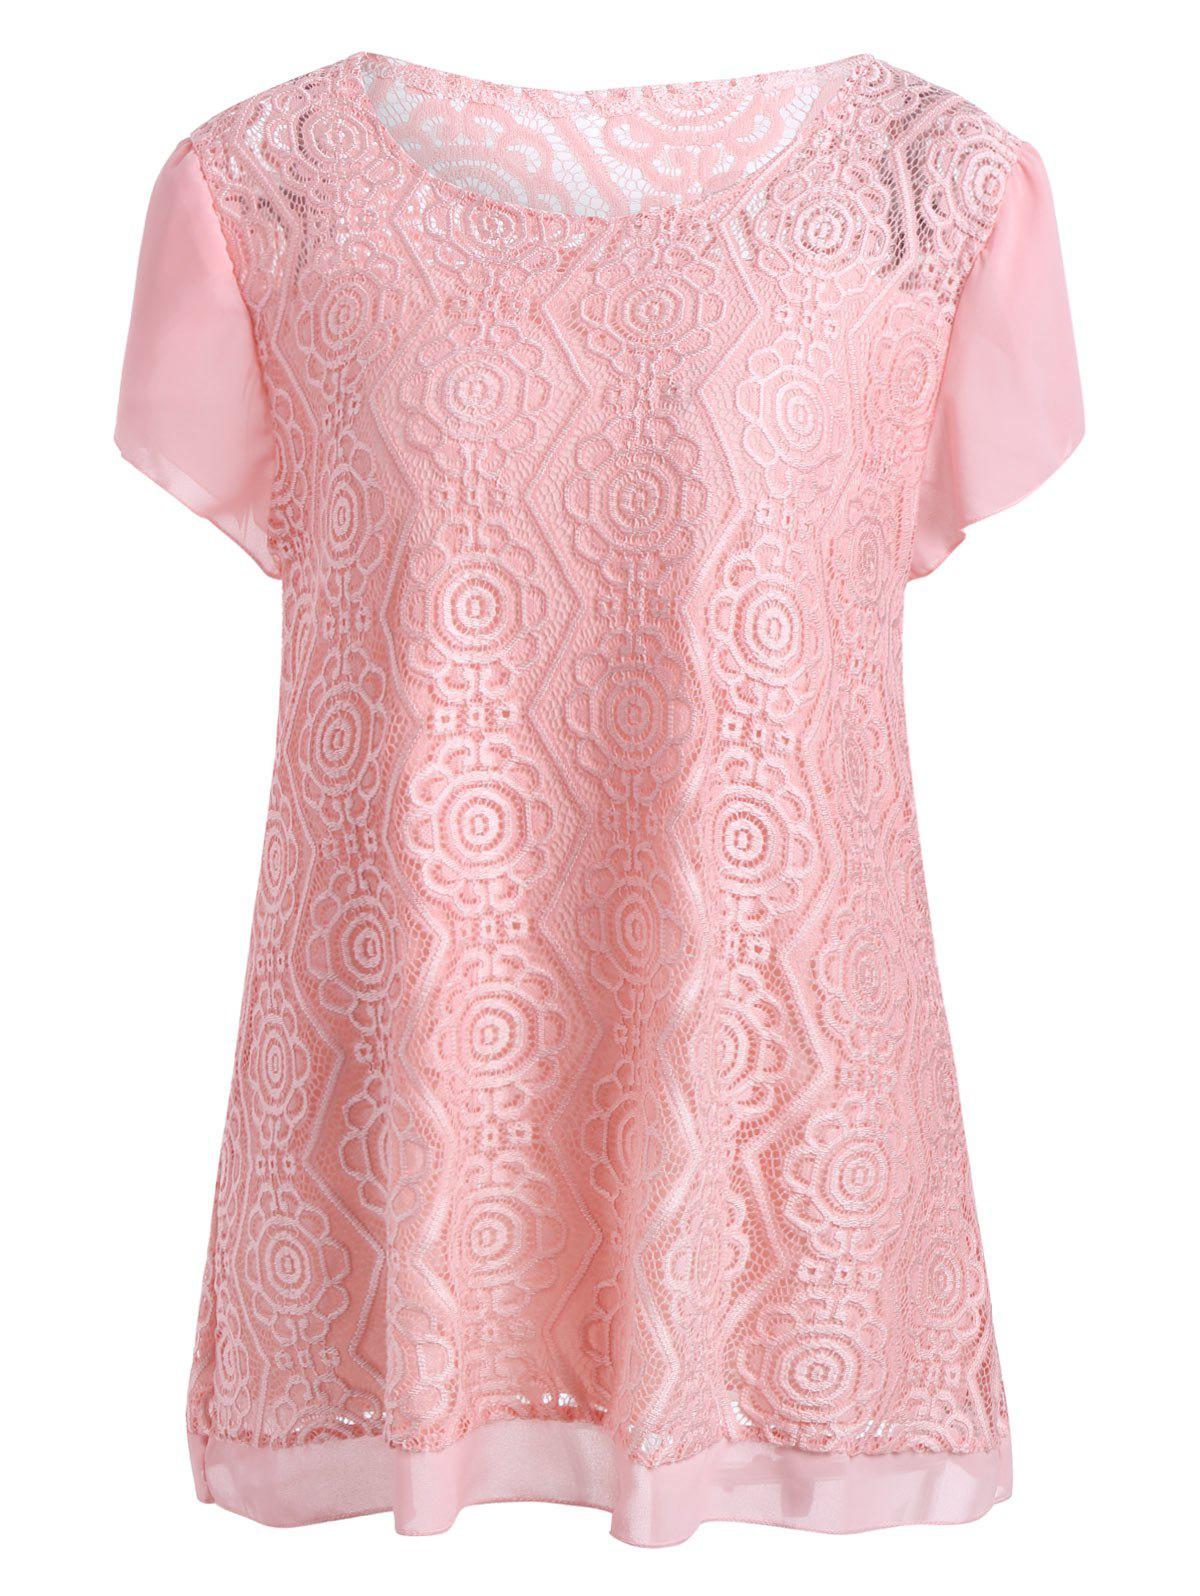 Plus Size Scoop Neck Long Lace BlouseWOMEN<br><br>Size: 5XL; Color: PINK; Material: Cotton Blends,Lace,Polyester; Shirt Length: Long; Sleeve Length: Short; Collar: Scoop Neck; Style: Fashion; Season: Spring,Summer; Pattern Type: Solid; Weight: 0.2500kg; Package Contents: 1 x Blouse;